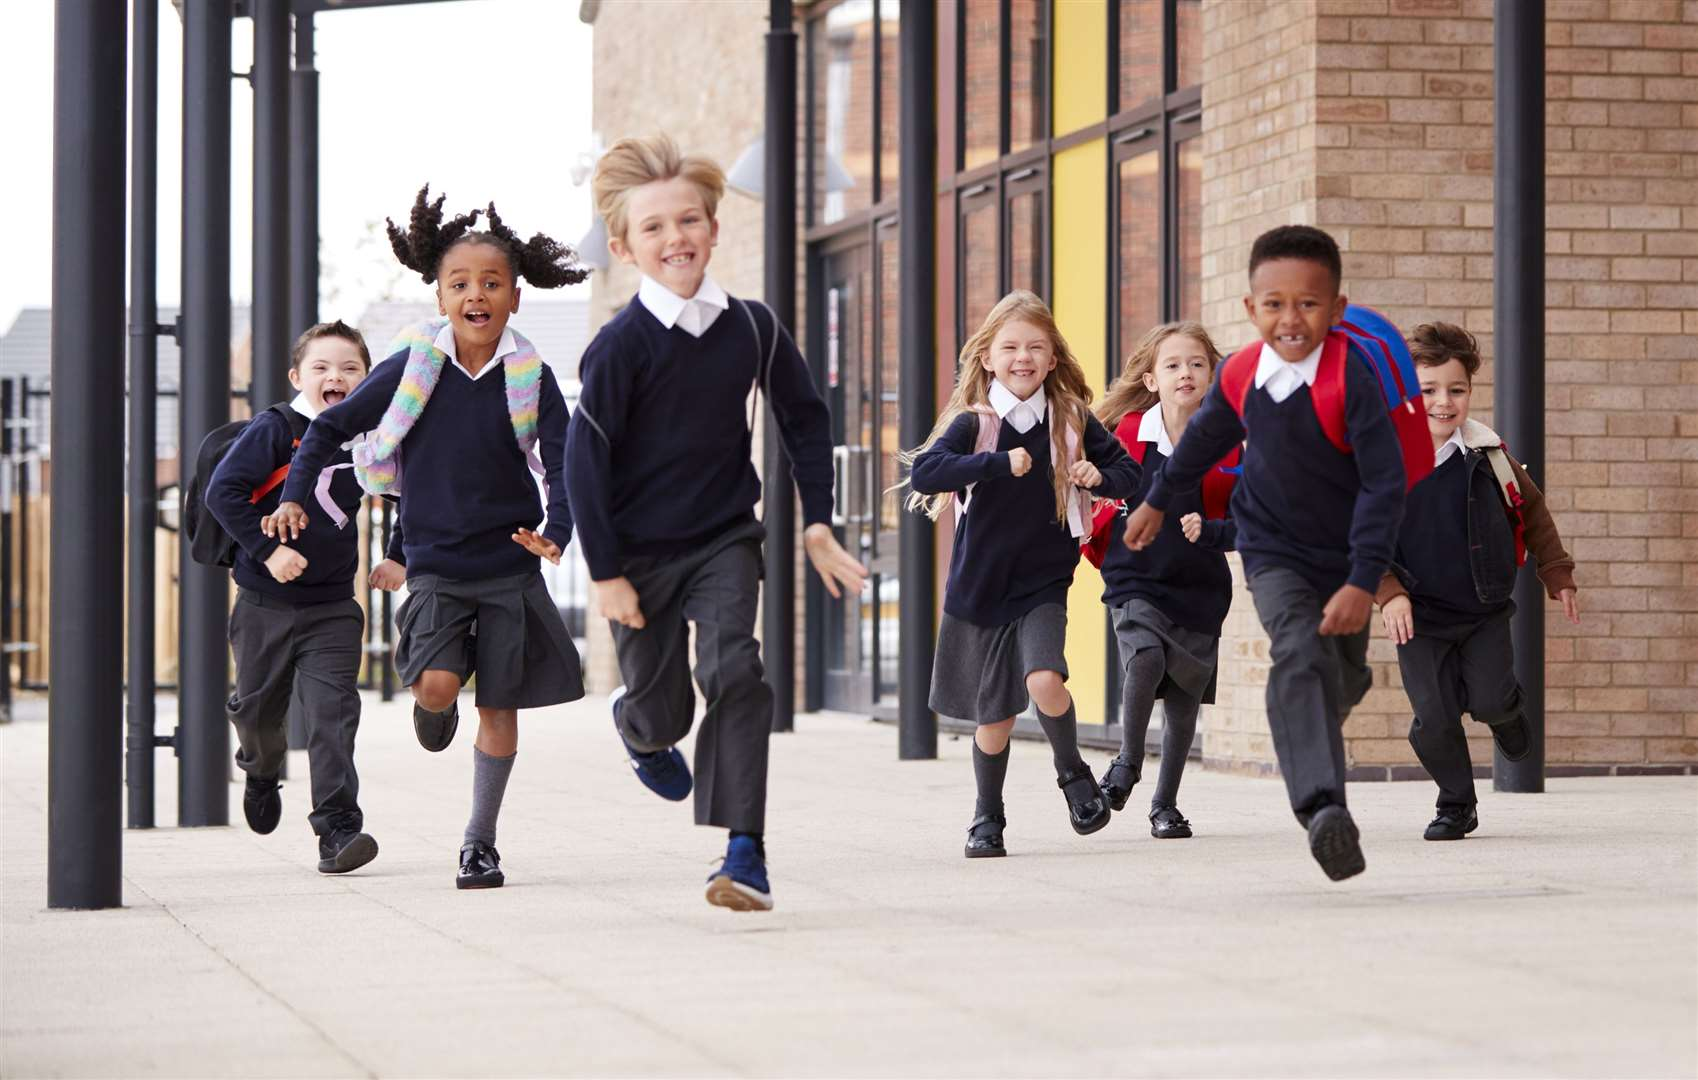 The new guidance will apply to both primary and secondary schools